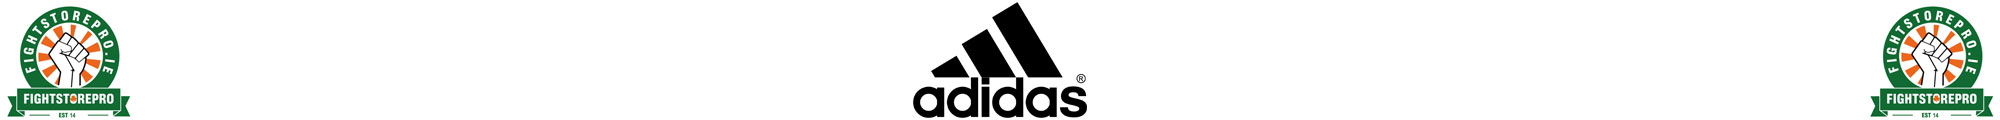 Adidas - Fightstore Ireland